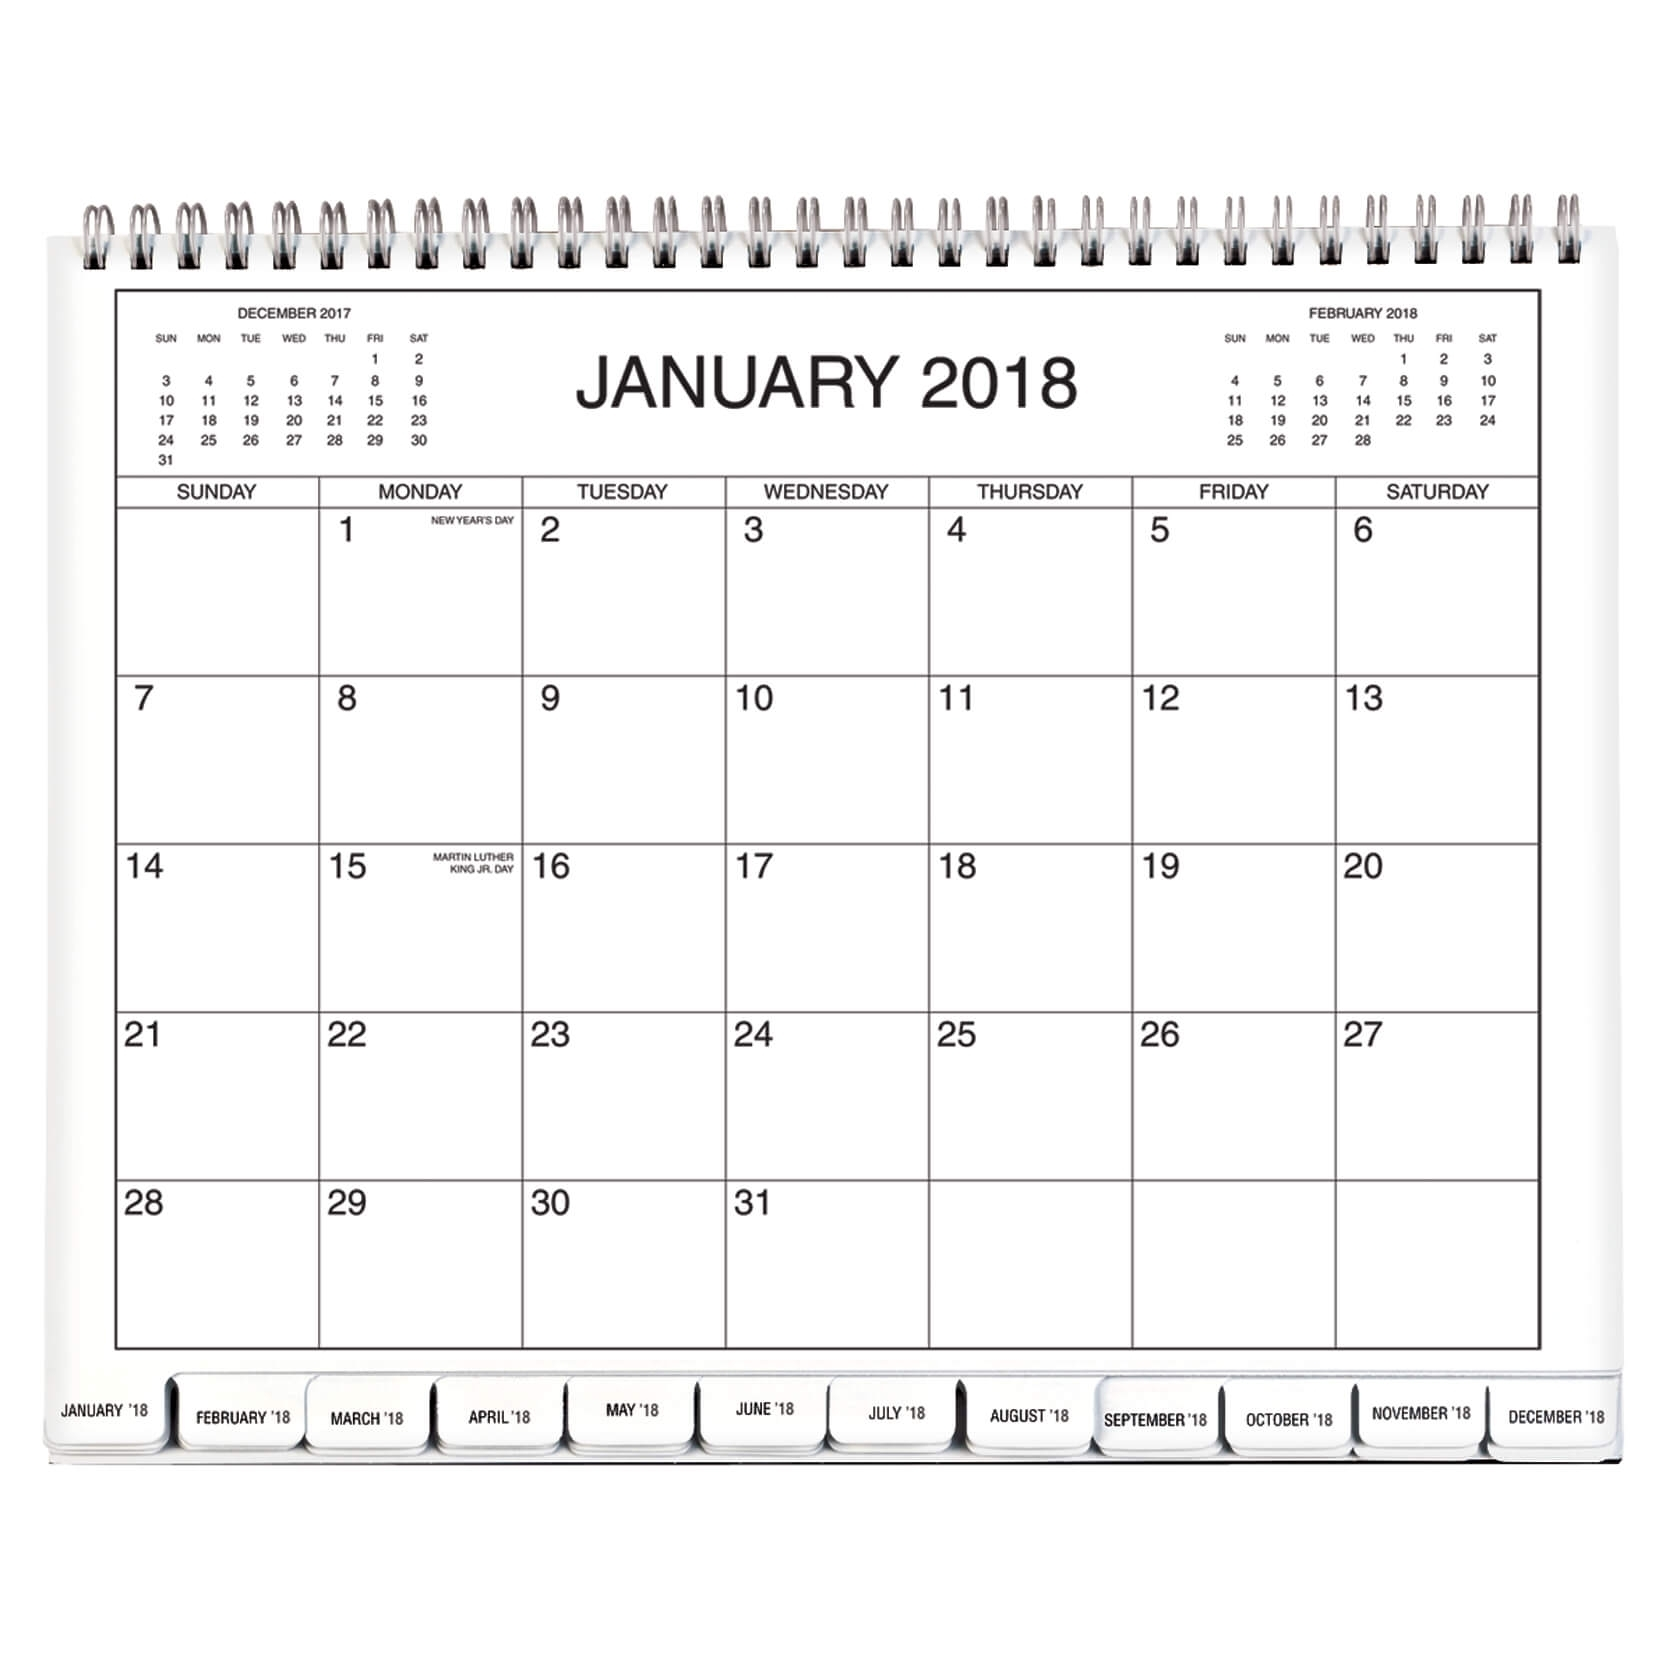 5 Year Calendar 2018-2019-2020-2021-2022 - Monthly Calendar - Walter intended for Year Calendar 2020 With Space To Write